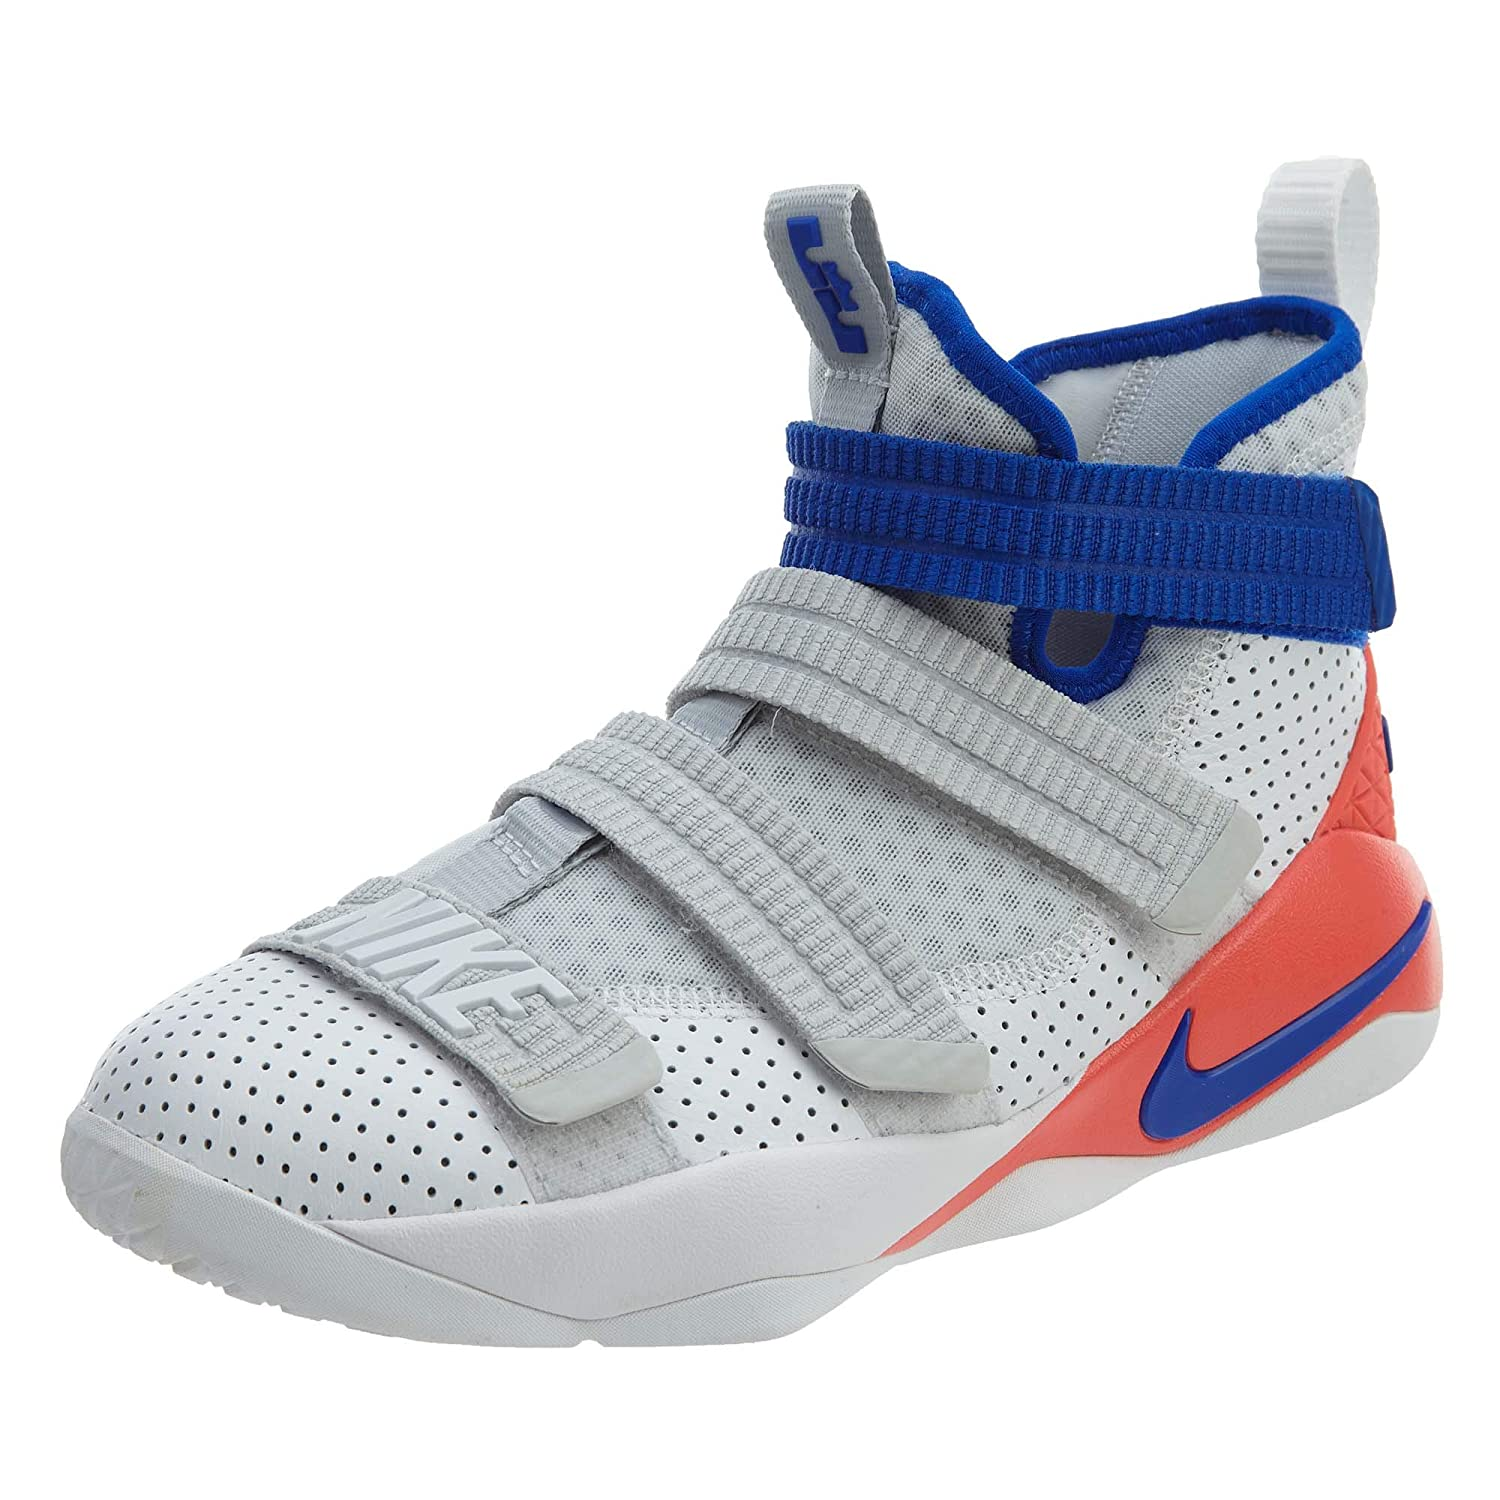 premium selection 03a32 21c29 NIKE Lebron Soldier Xi SFG (Kids) White/Racer Blue-Infrared Size 6 US Youth